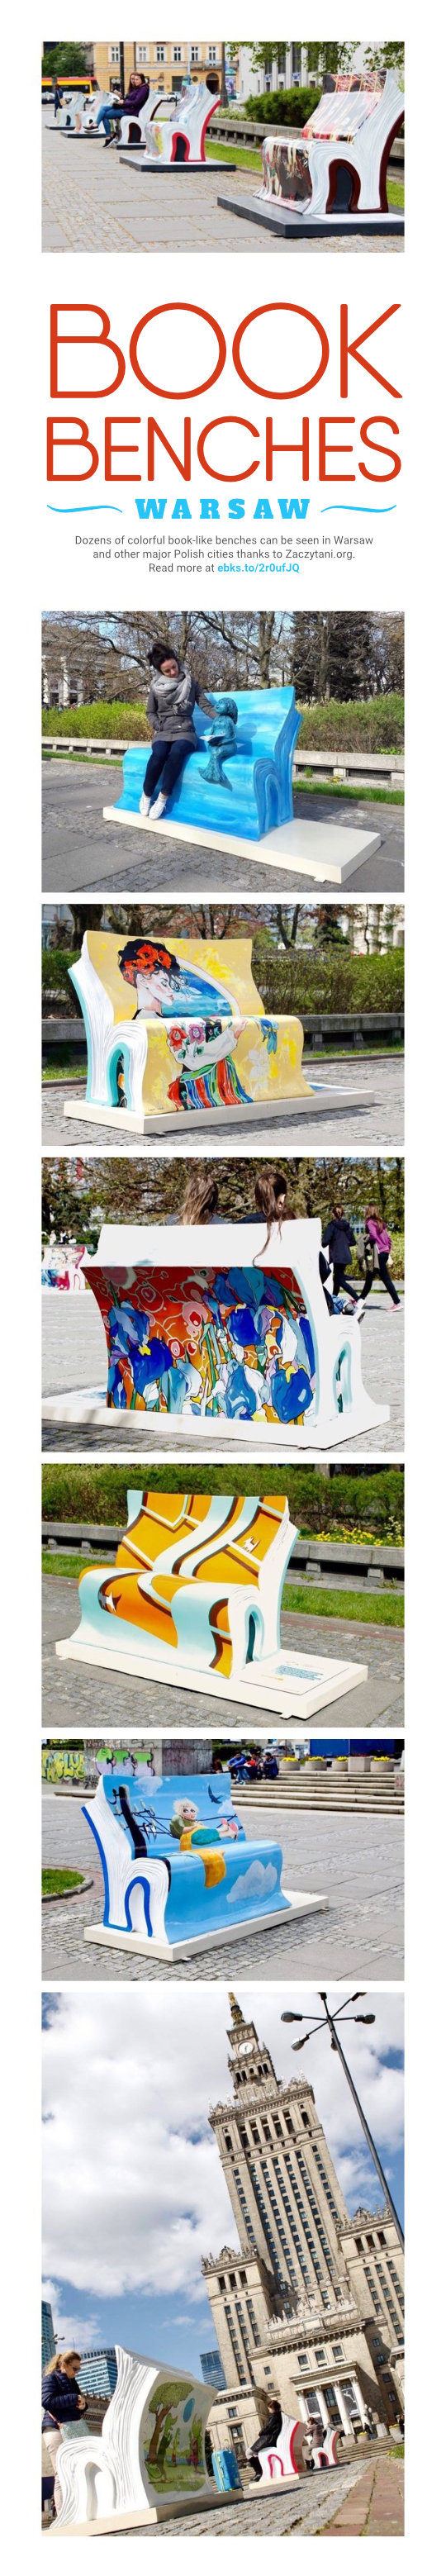 Warsaw book benches in pictures